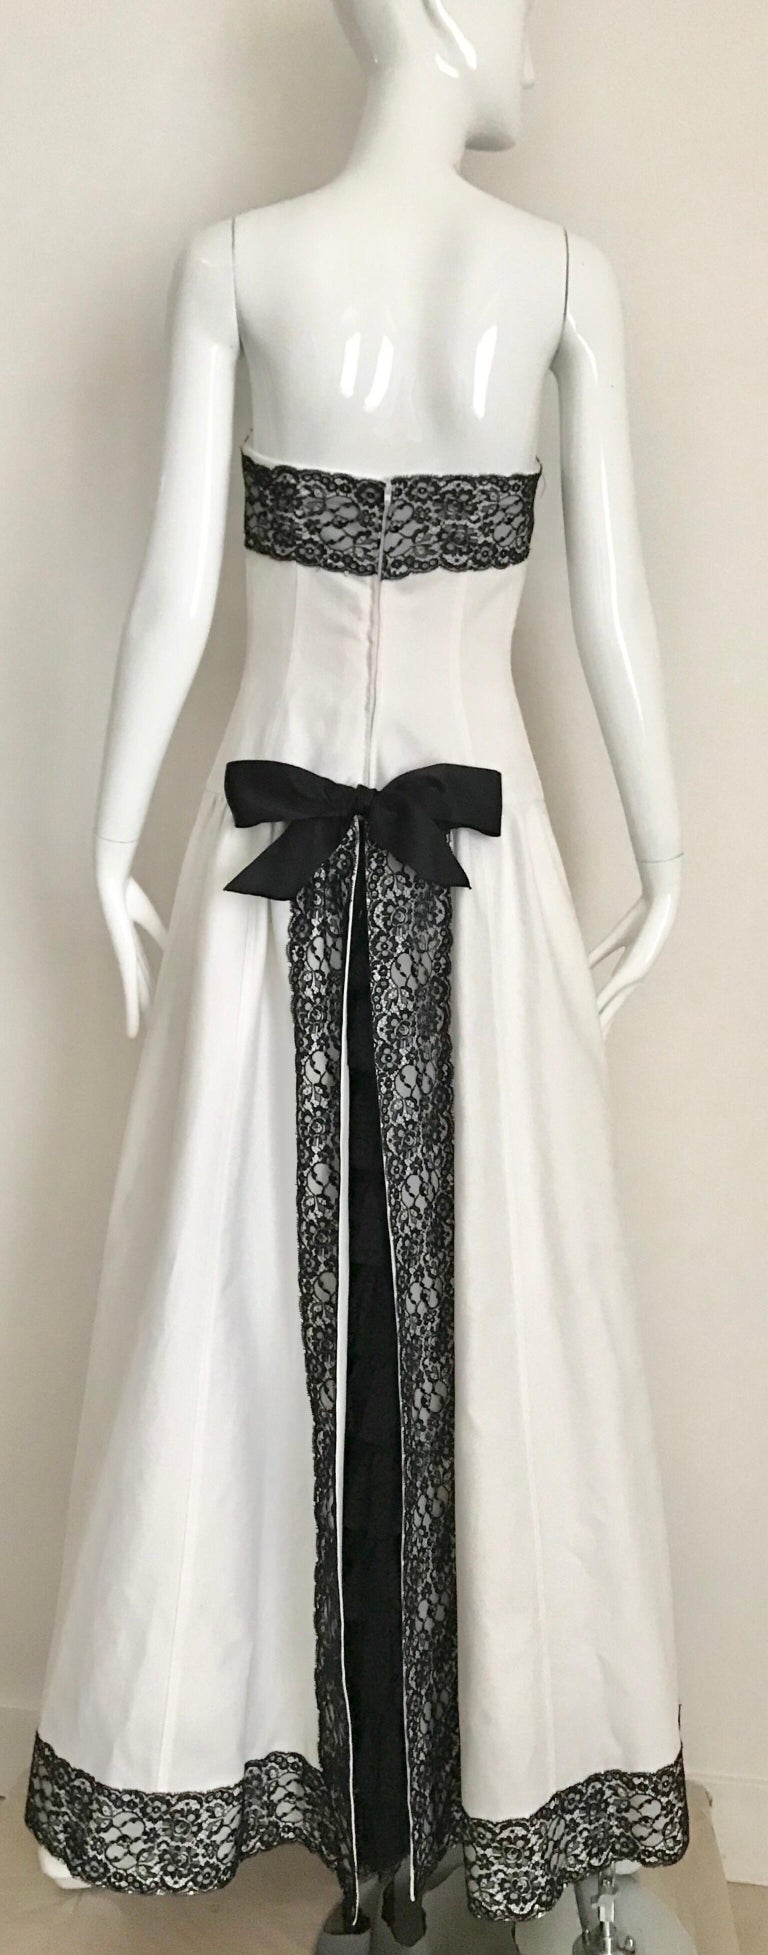 Women's Chanel White and Black Cotton Pique Strapless Cocktail Dress, 1980s  For Sale